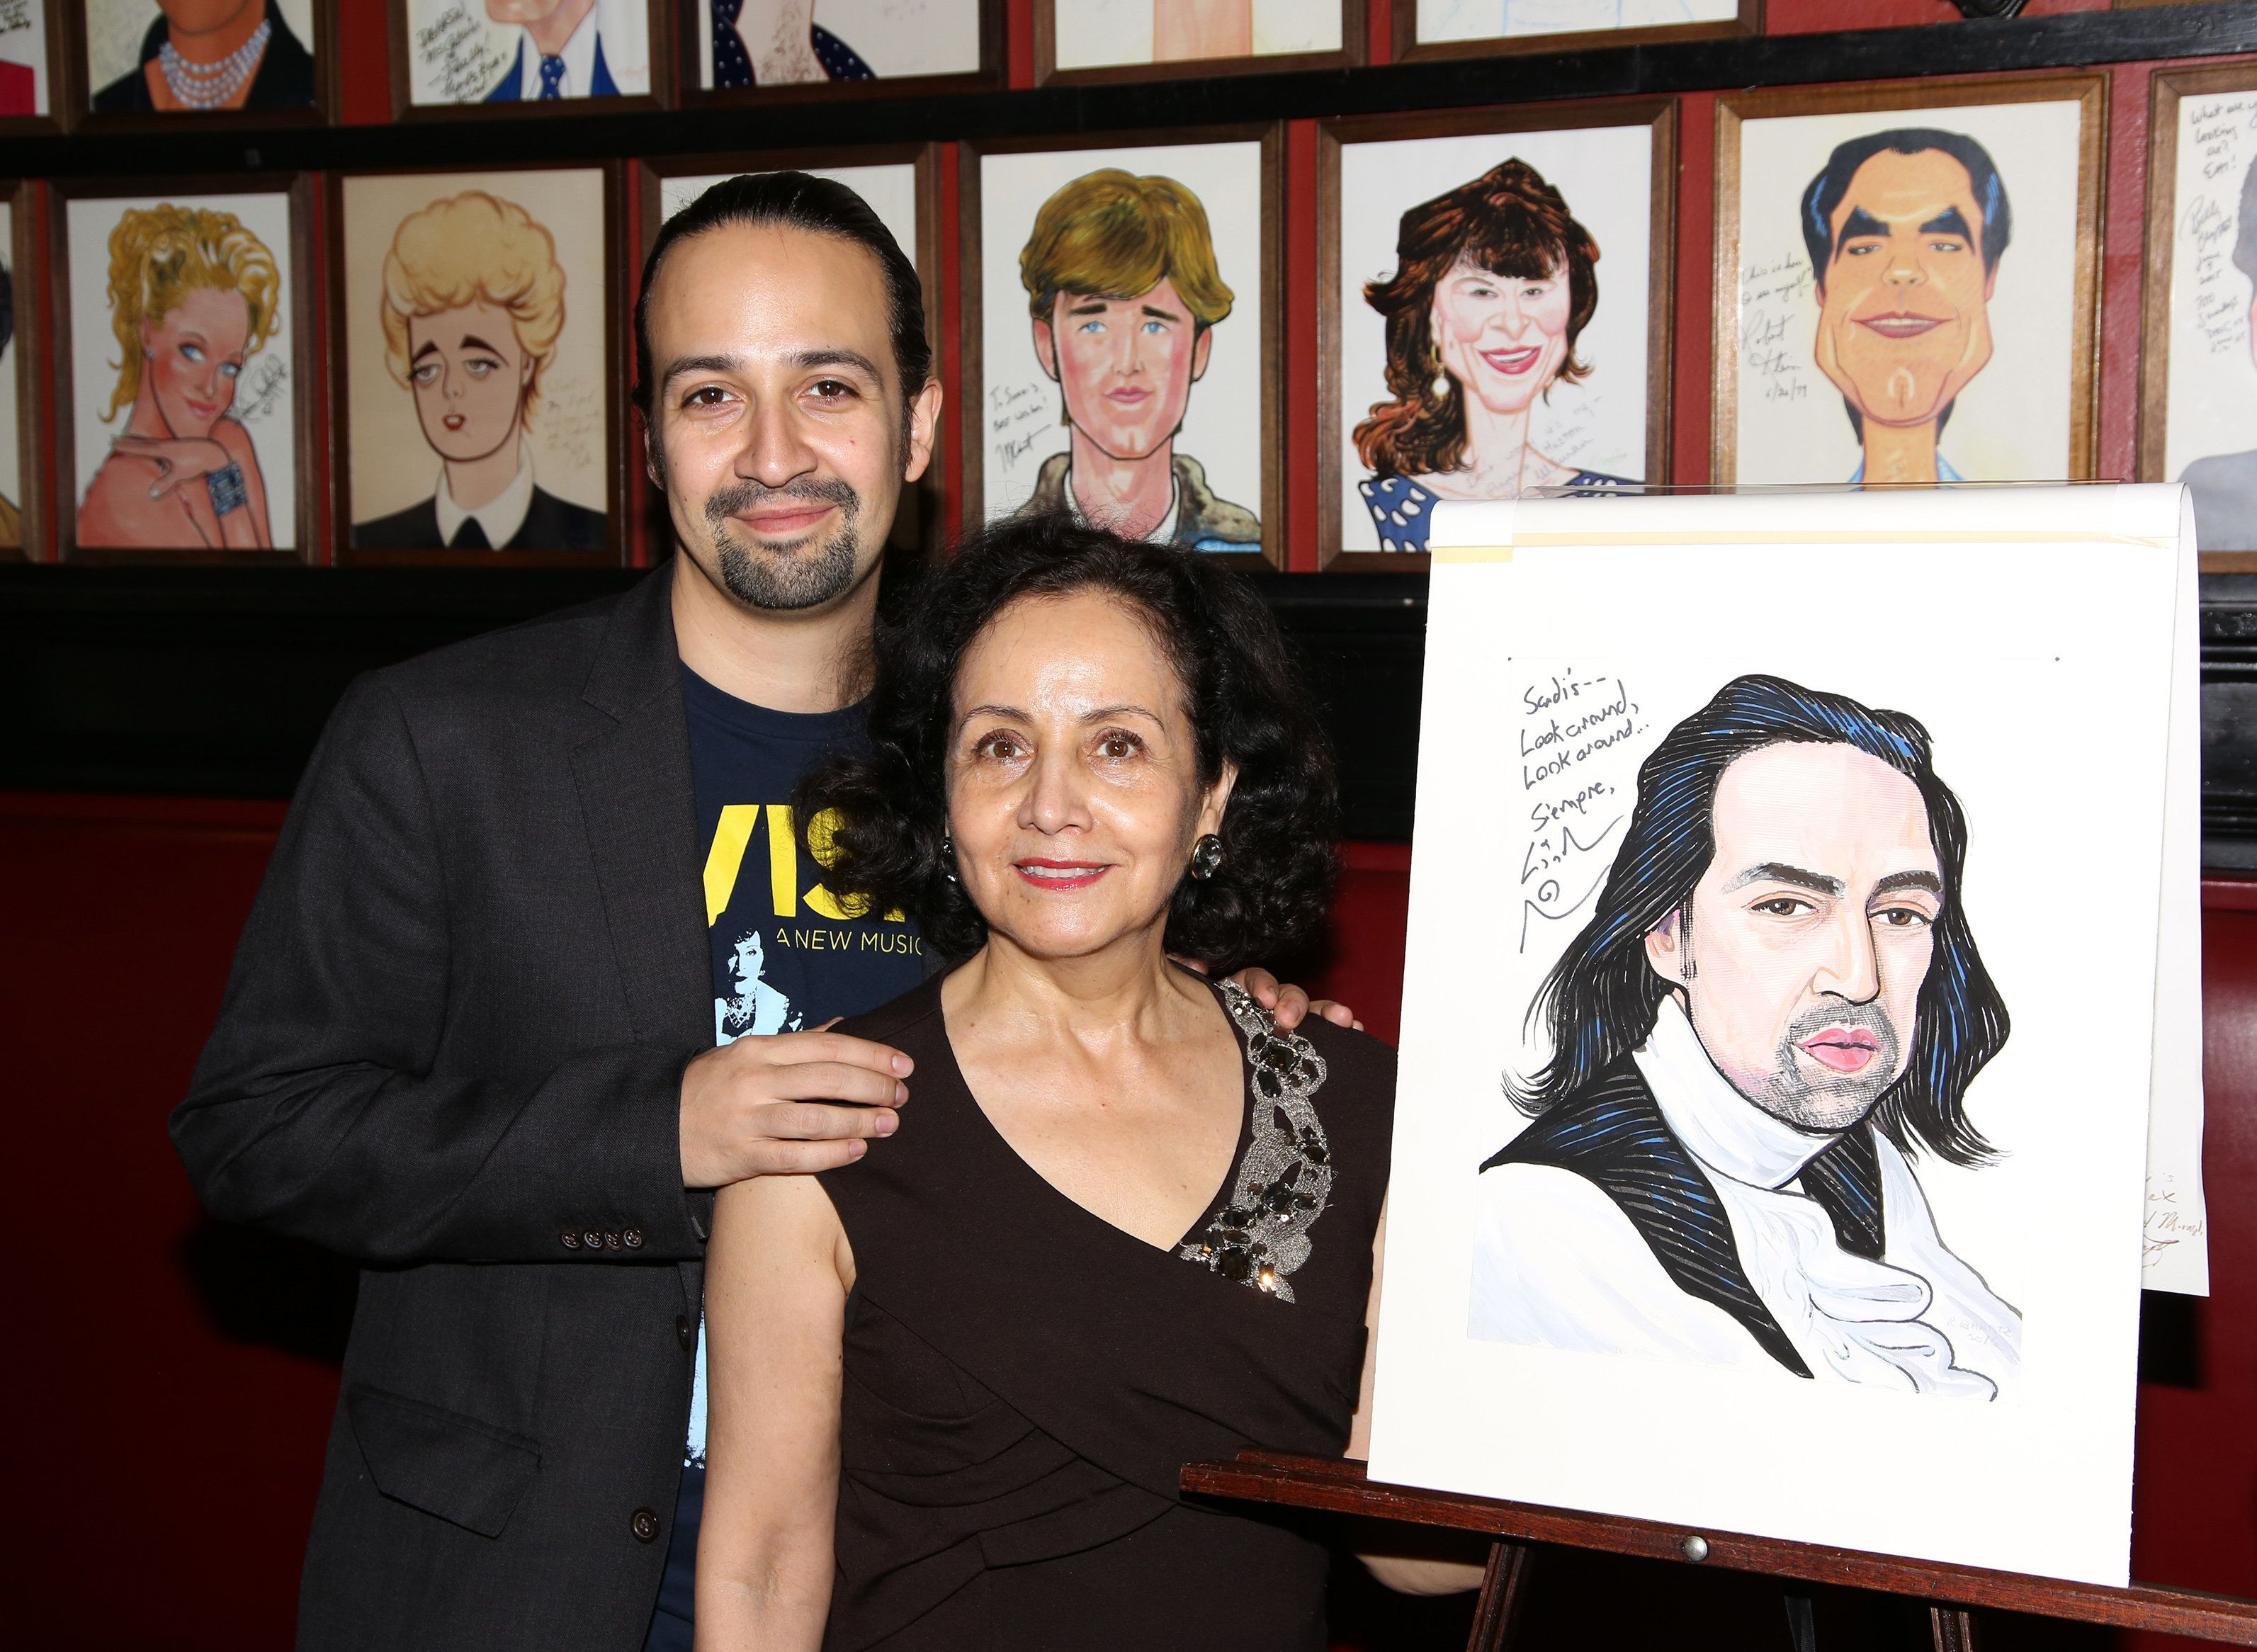 Together, Lin-Manuel Miranda and his mom, Luz Towns-Miranda, watched the unveiling of his portrait at Sardi's in New Yor